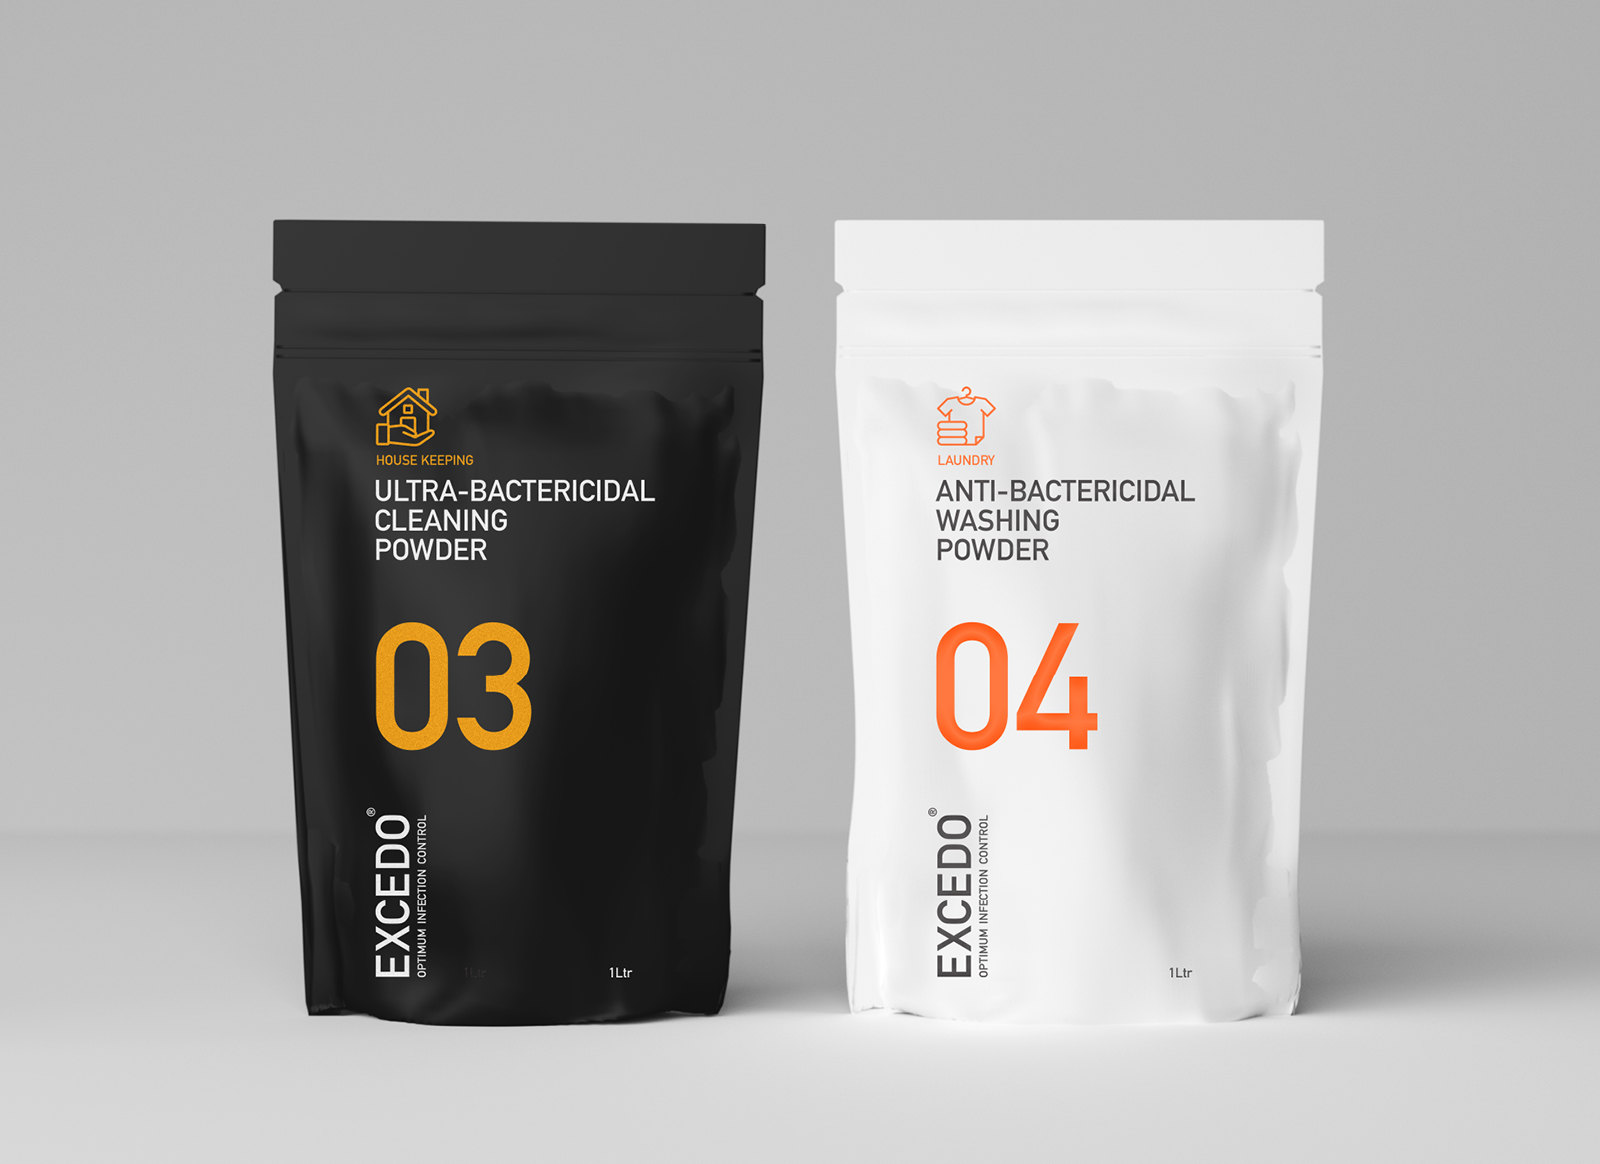 Brand design for heath consumables in the form of recycled packaging